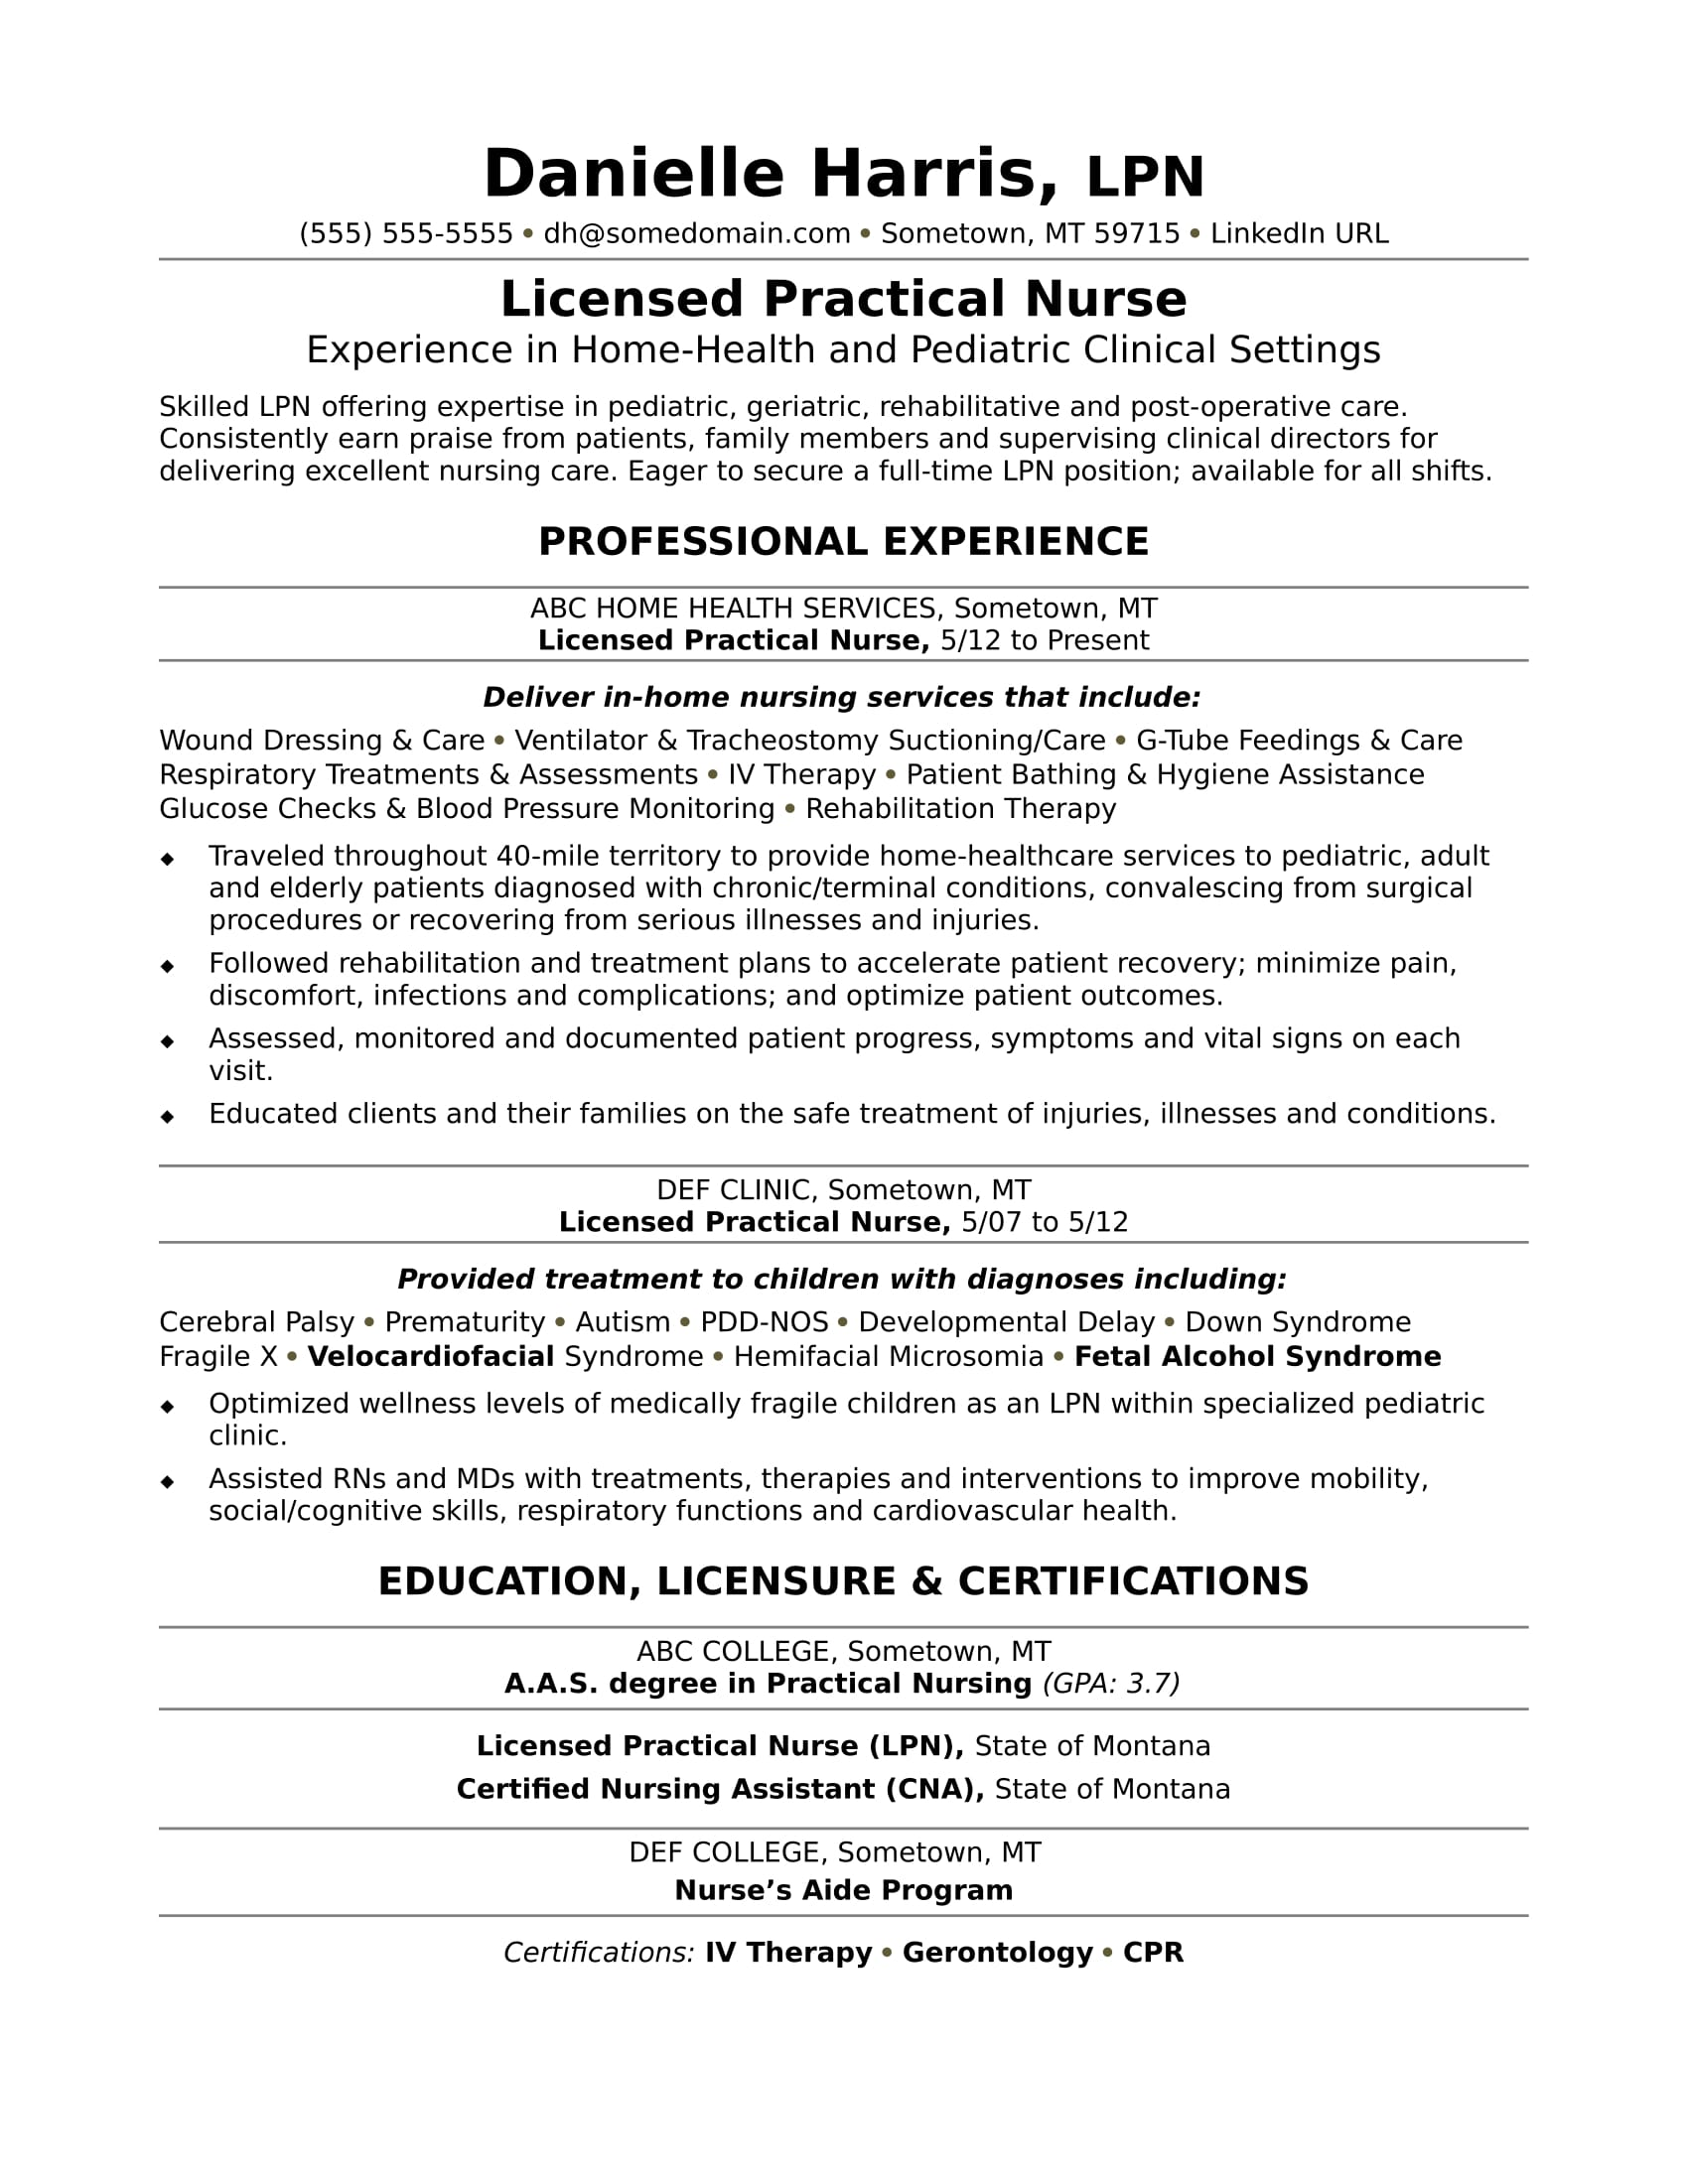 Licensed Practical Nurse Resume Sample  Where To Put Certifications On Resume